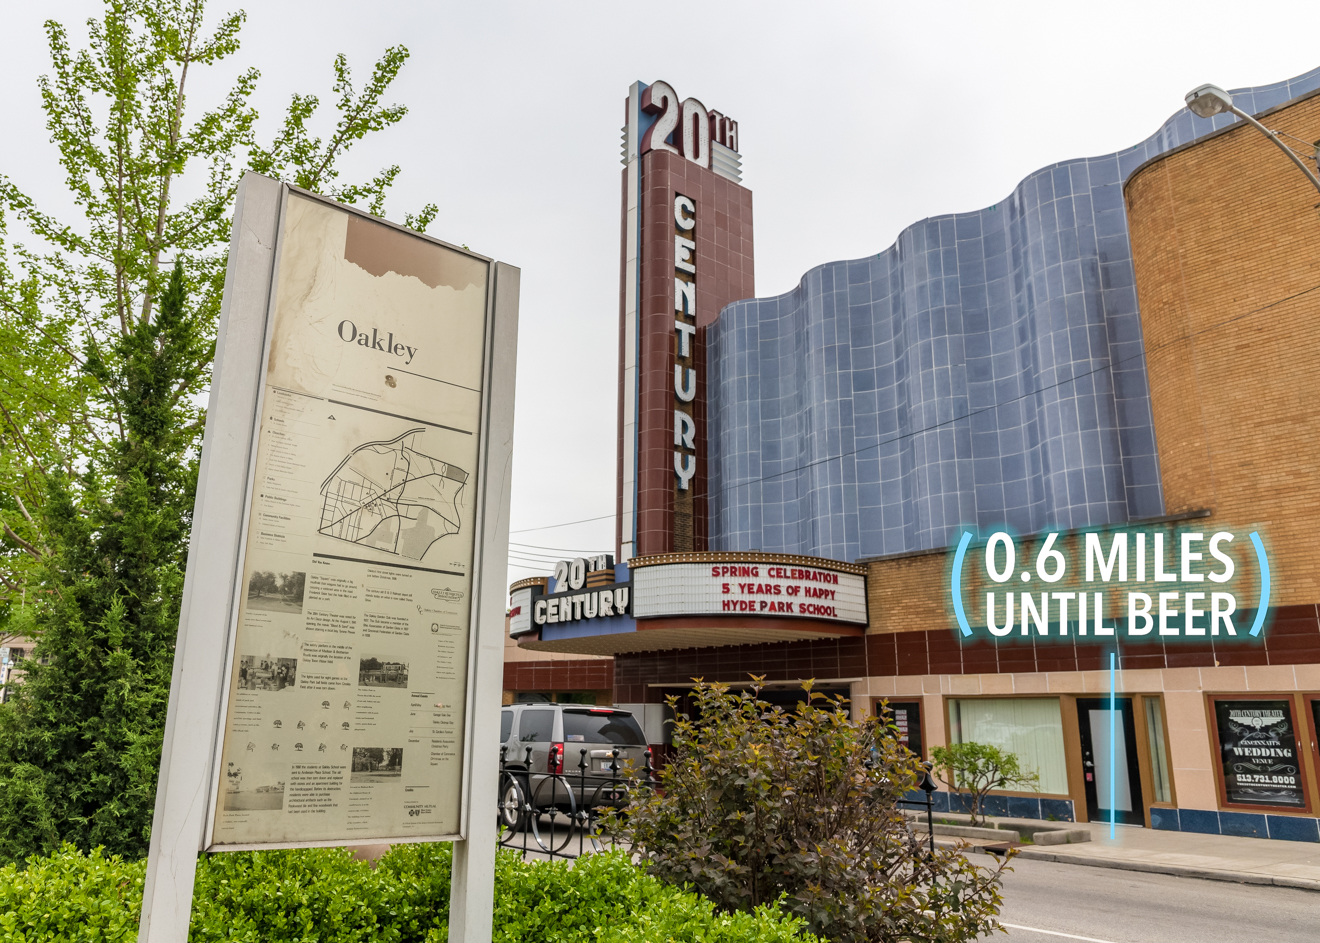 Continue on Madison Road into Oakley Square. The Geier Esplanade and 20th Century Theater are recognizable landmarks. / Image: Phil Armstrong, Cincinnati Refined // Published: 4.25.17